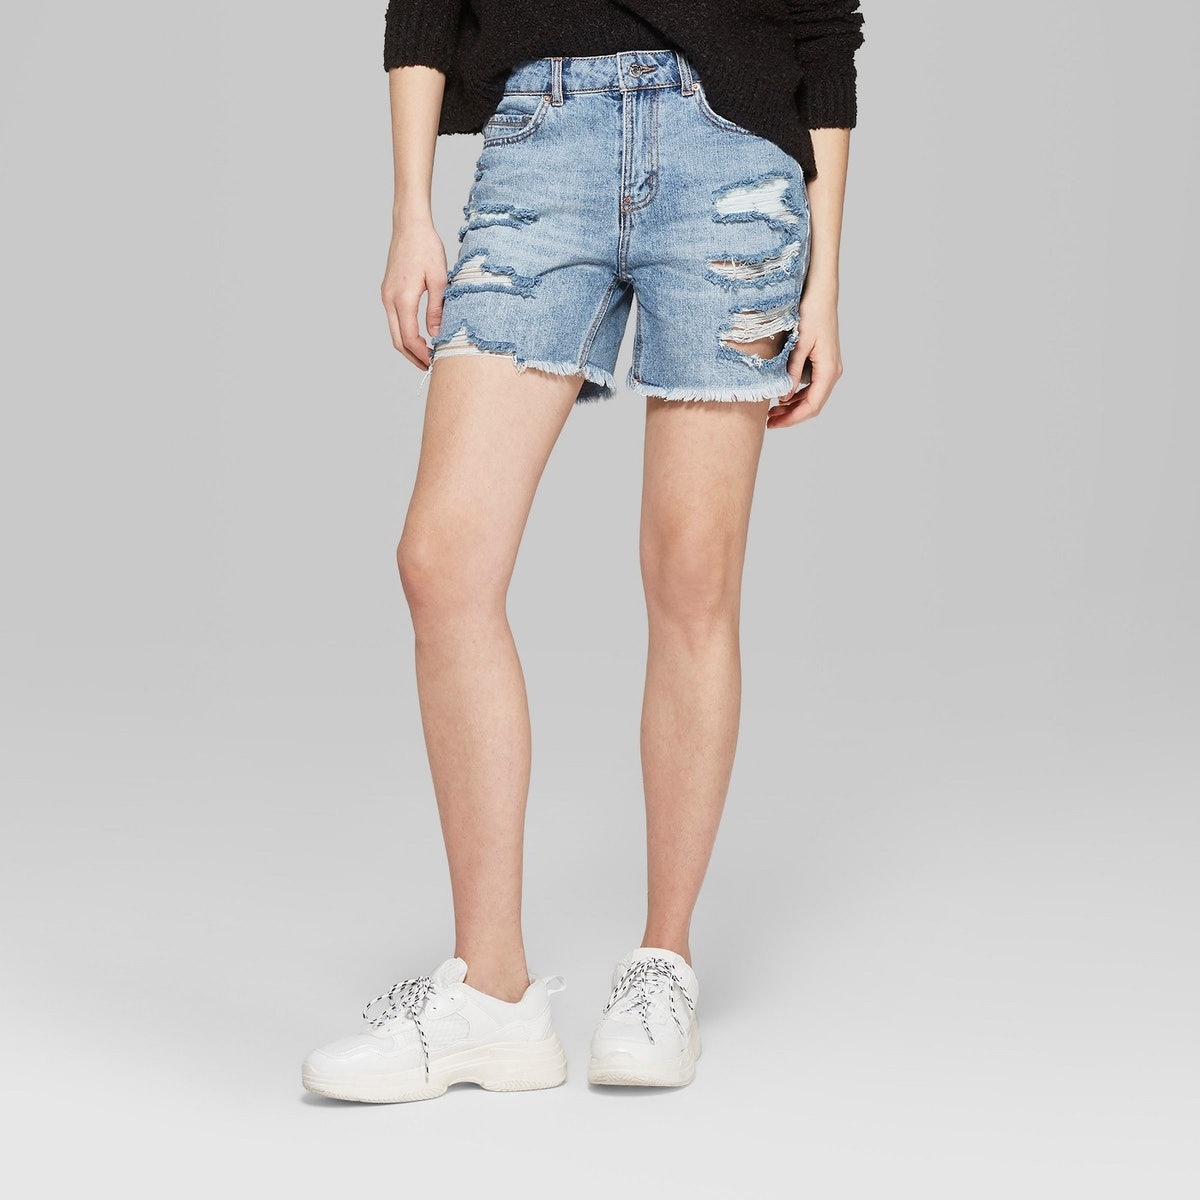 Wild Fable High-Rise Destructed Relaxed Longer Length Jean Shorts